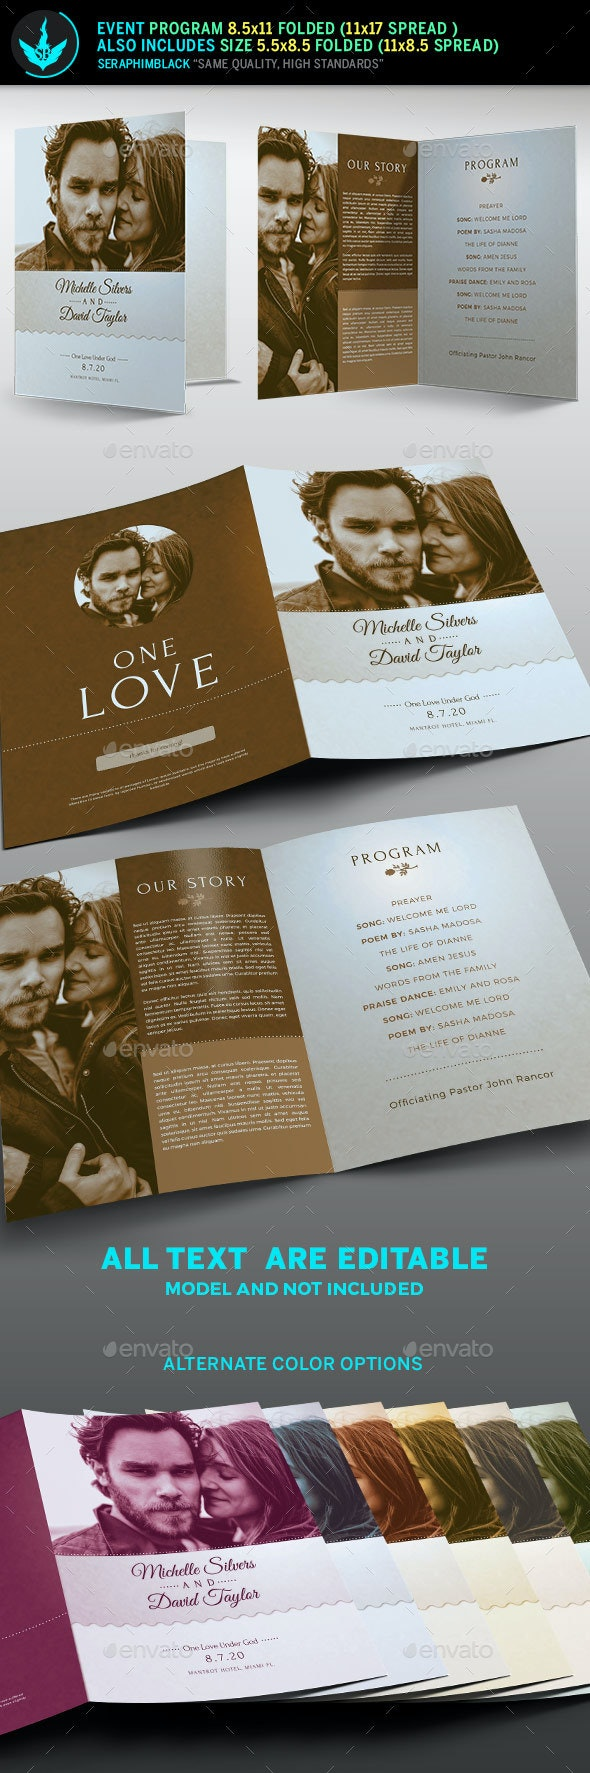 Retro Wedding Program Template - Informational Brochures